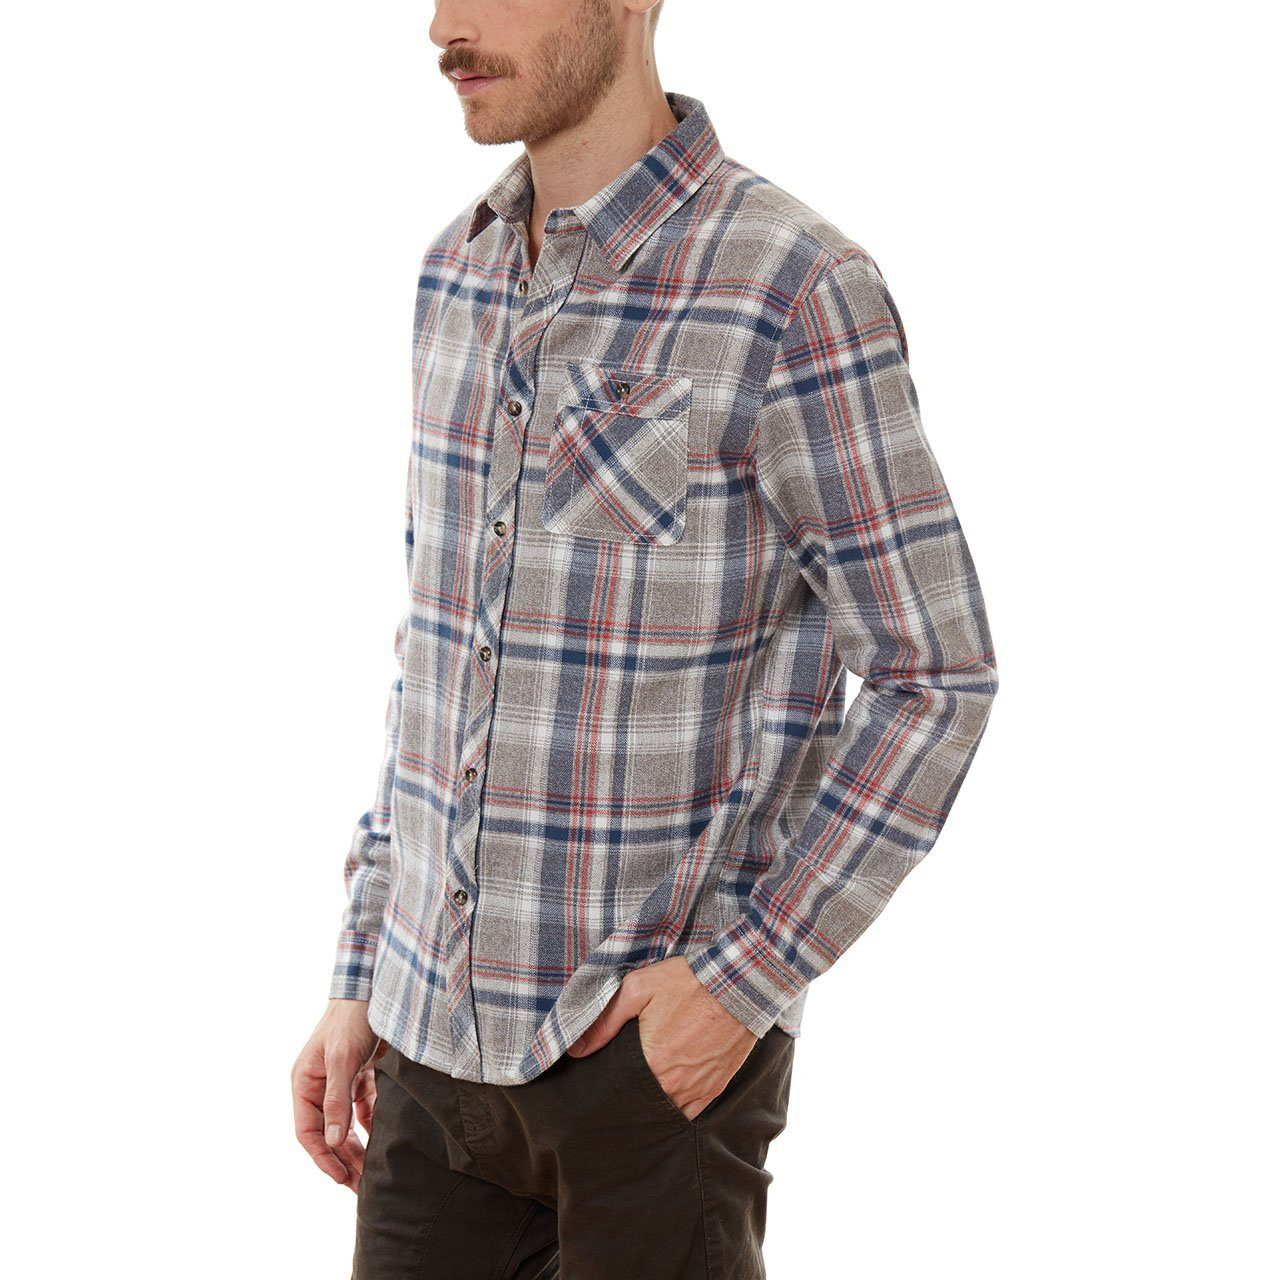 Long Sleeve Shirt, Shirt - Troy Shirt